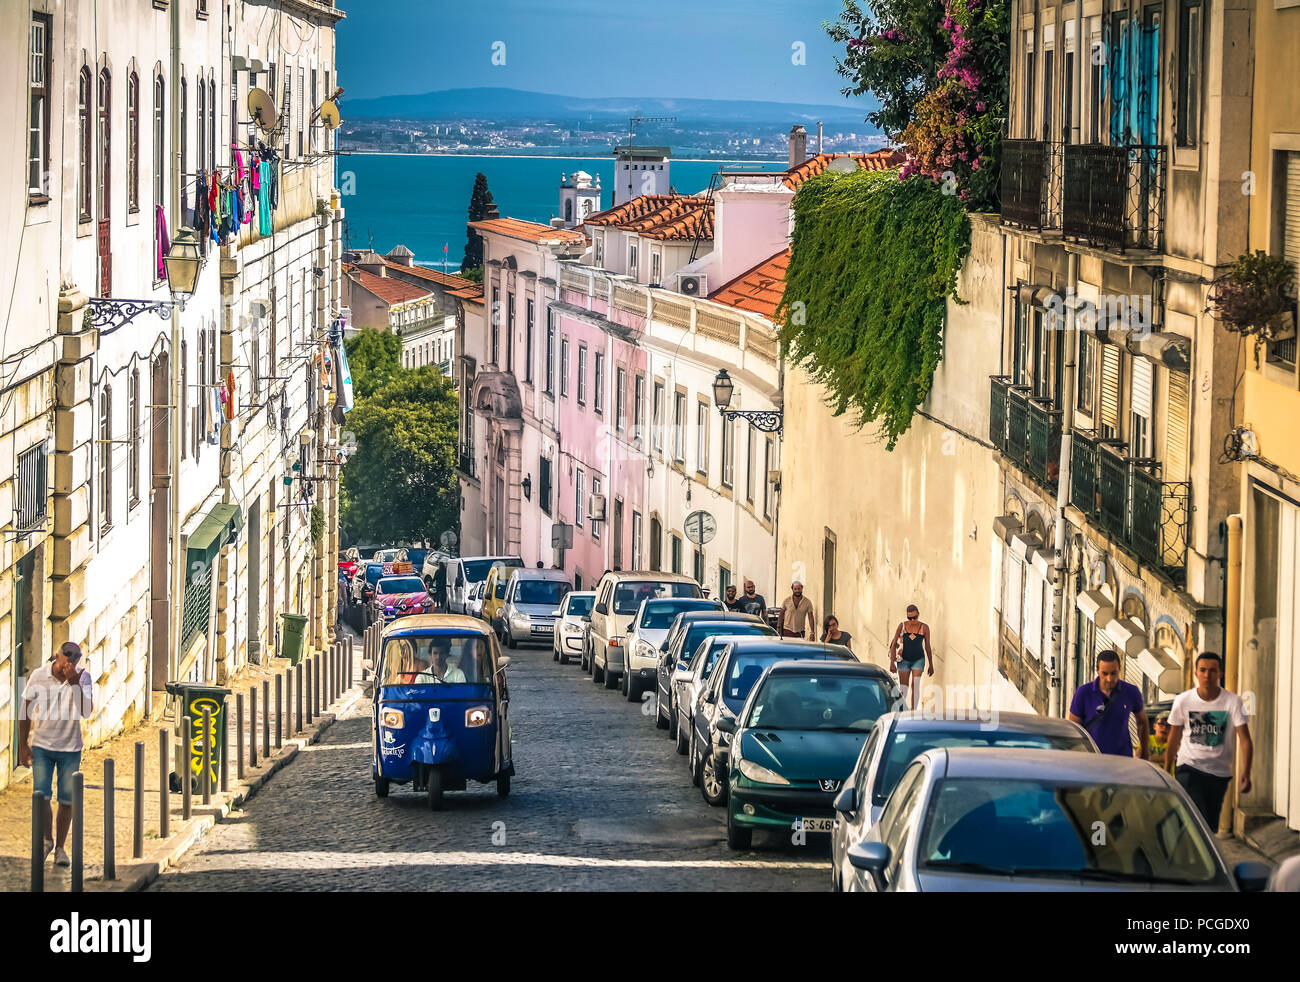 Lisbon. A tuk-tuk of the first generation climbing uphill in Graça. - Stock Image